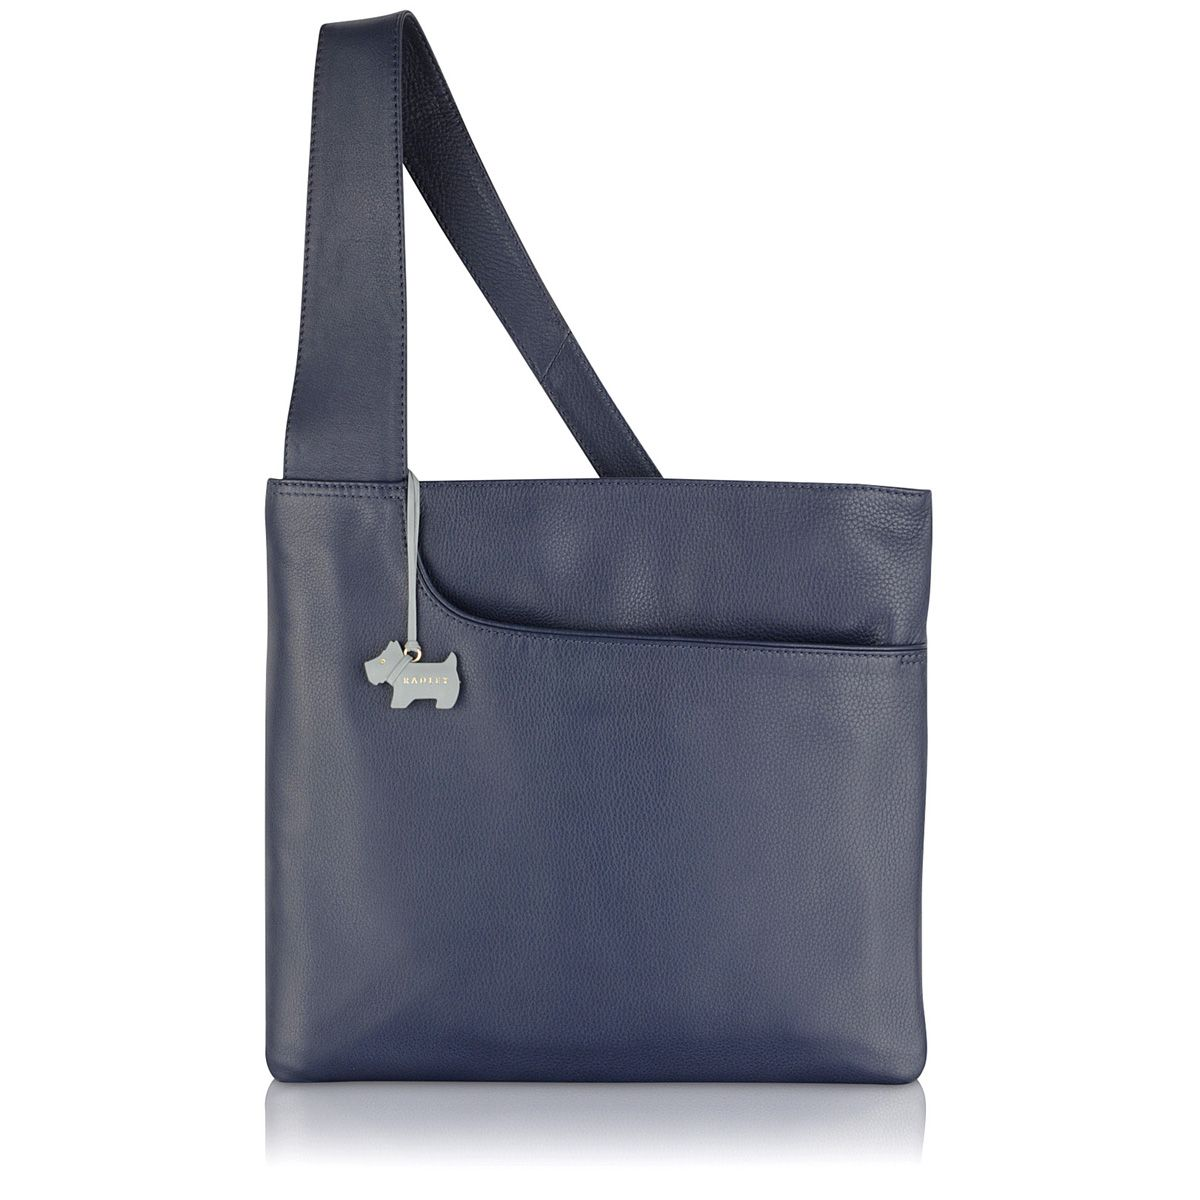 Radley Pocket bag large ziptop acrossbody bag Navy